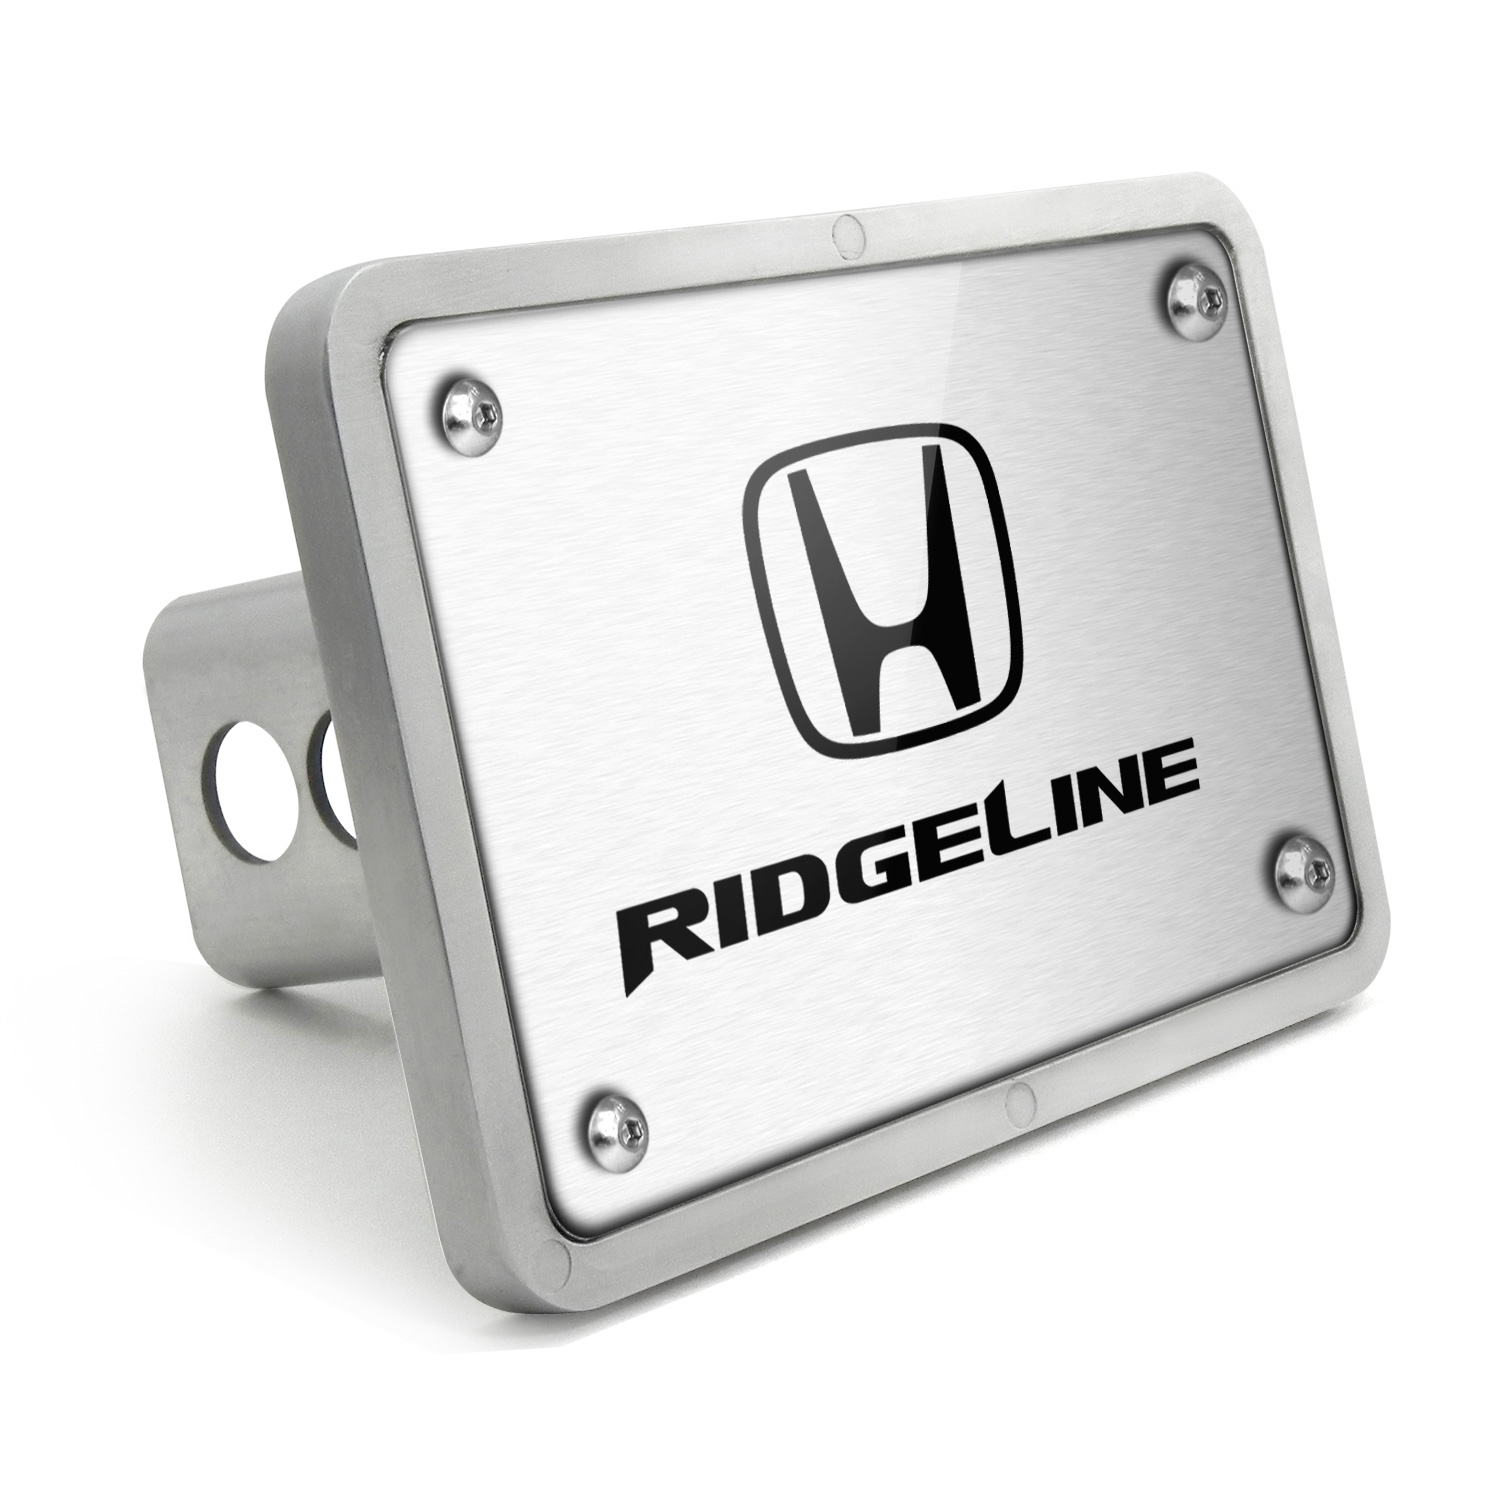 Honda Ridgeline UV Graphic Brushed Billet Aluminum 2 inch Tow Hitch Cover